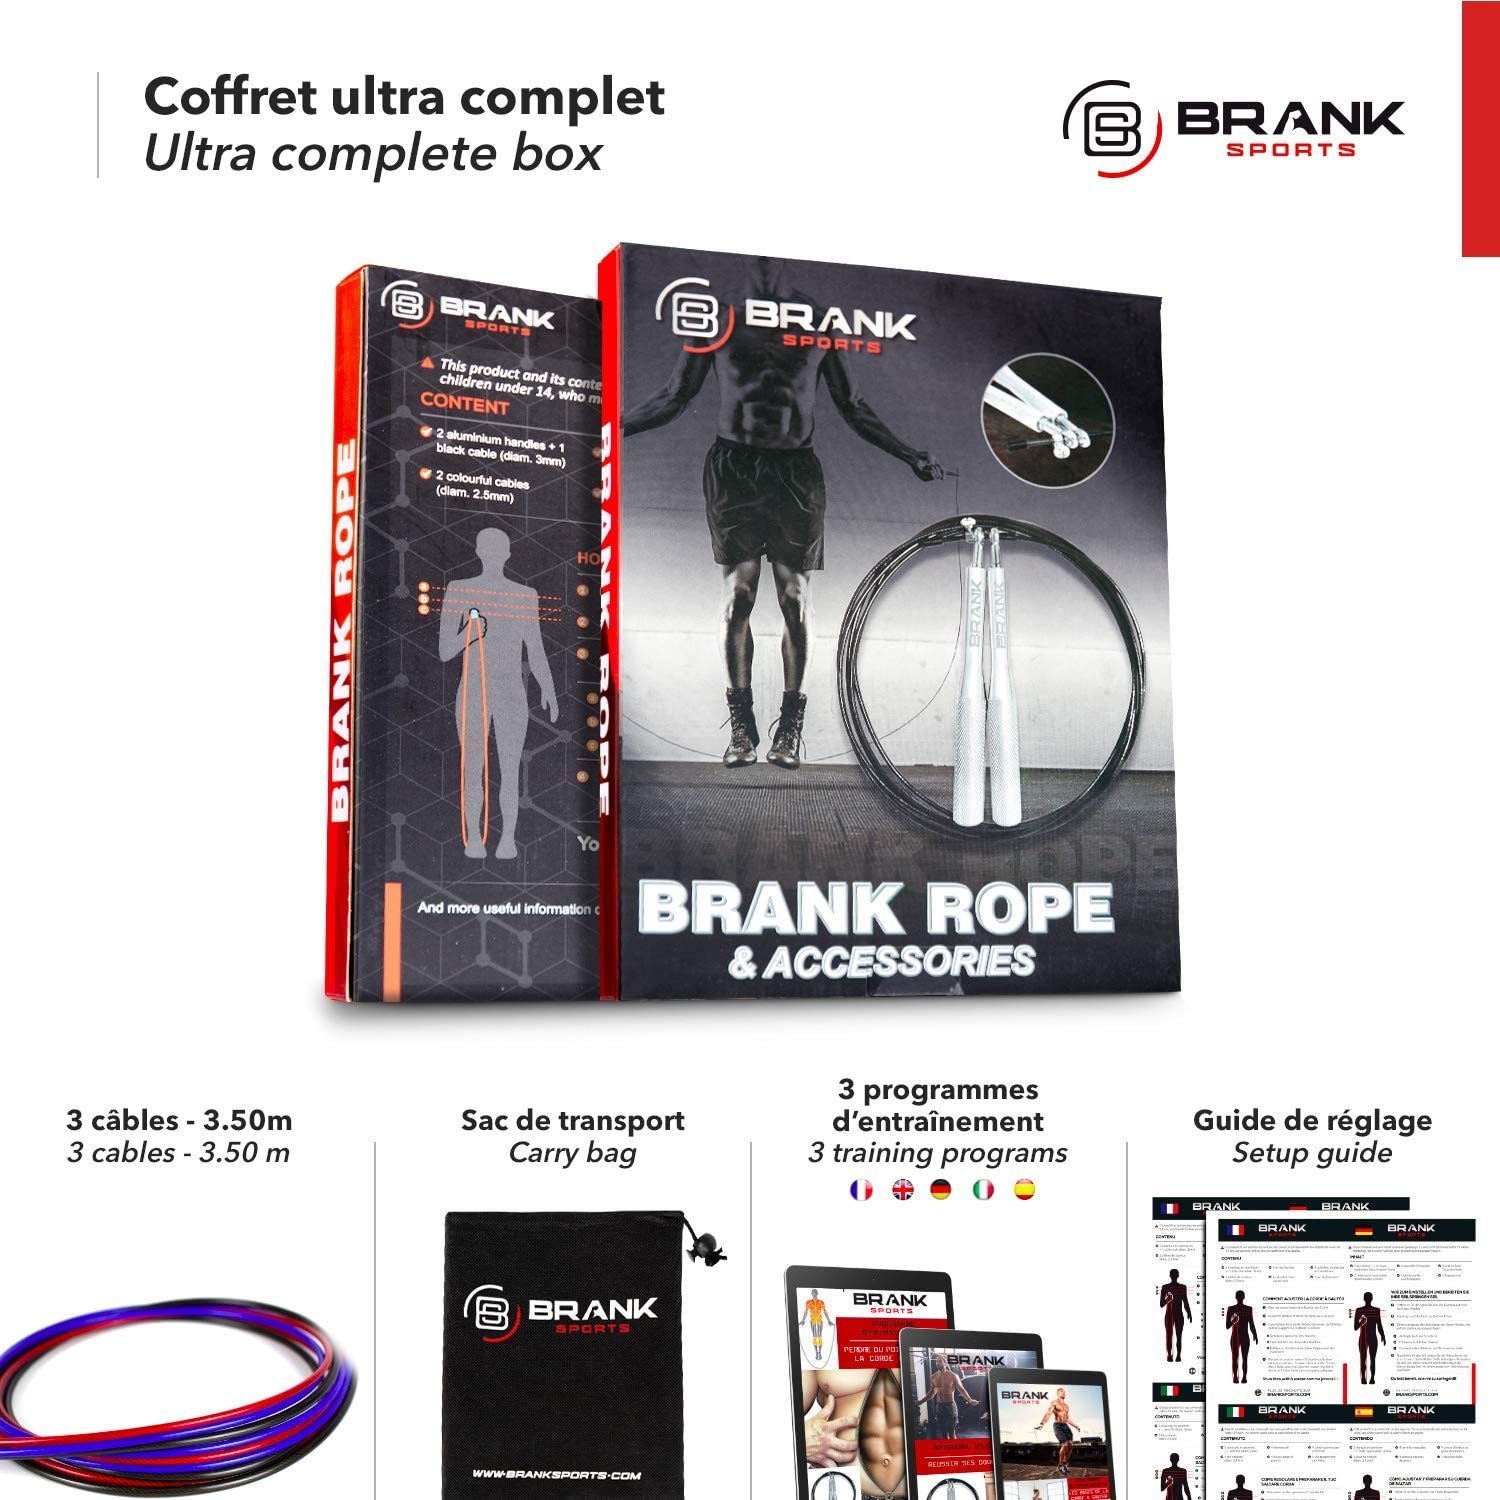 BRANK SPORTS® Speed rope incl. 3 steel spare cables | Ideal for Crossfit, fitness, boxing and easy double under | Skipping ropes for fitness women and ...